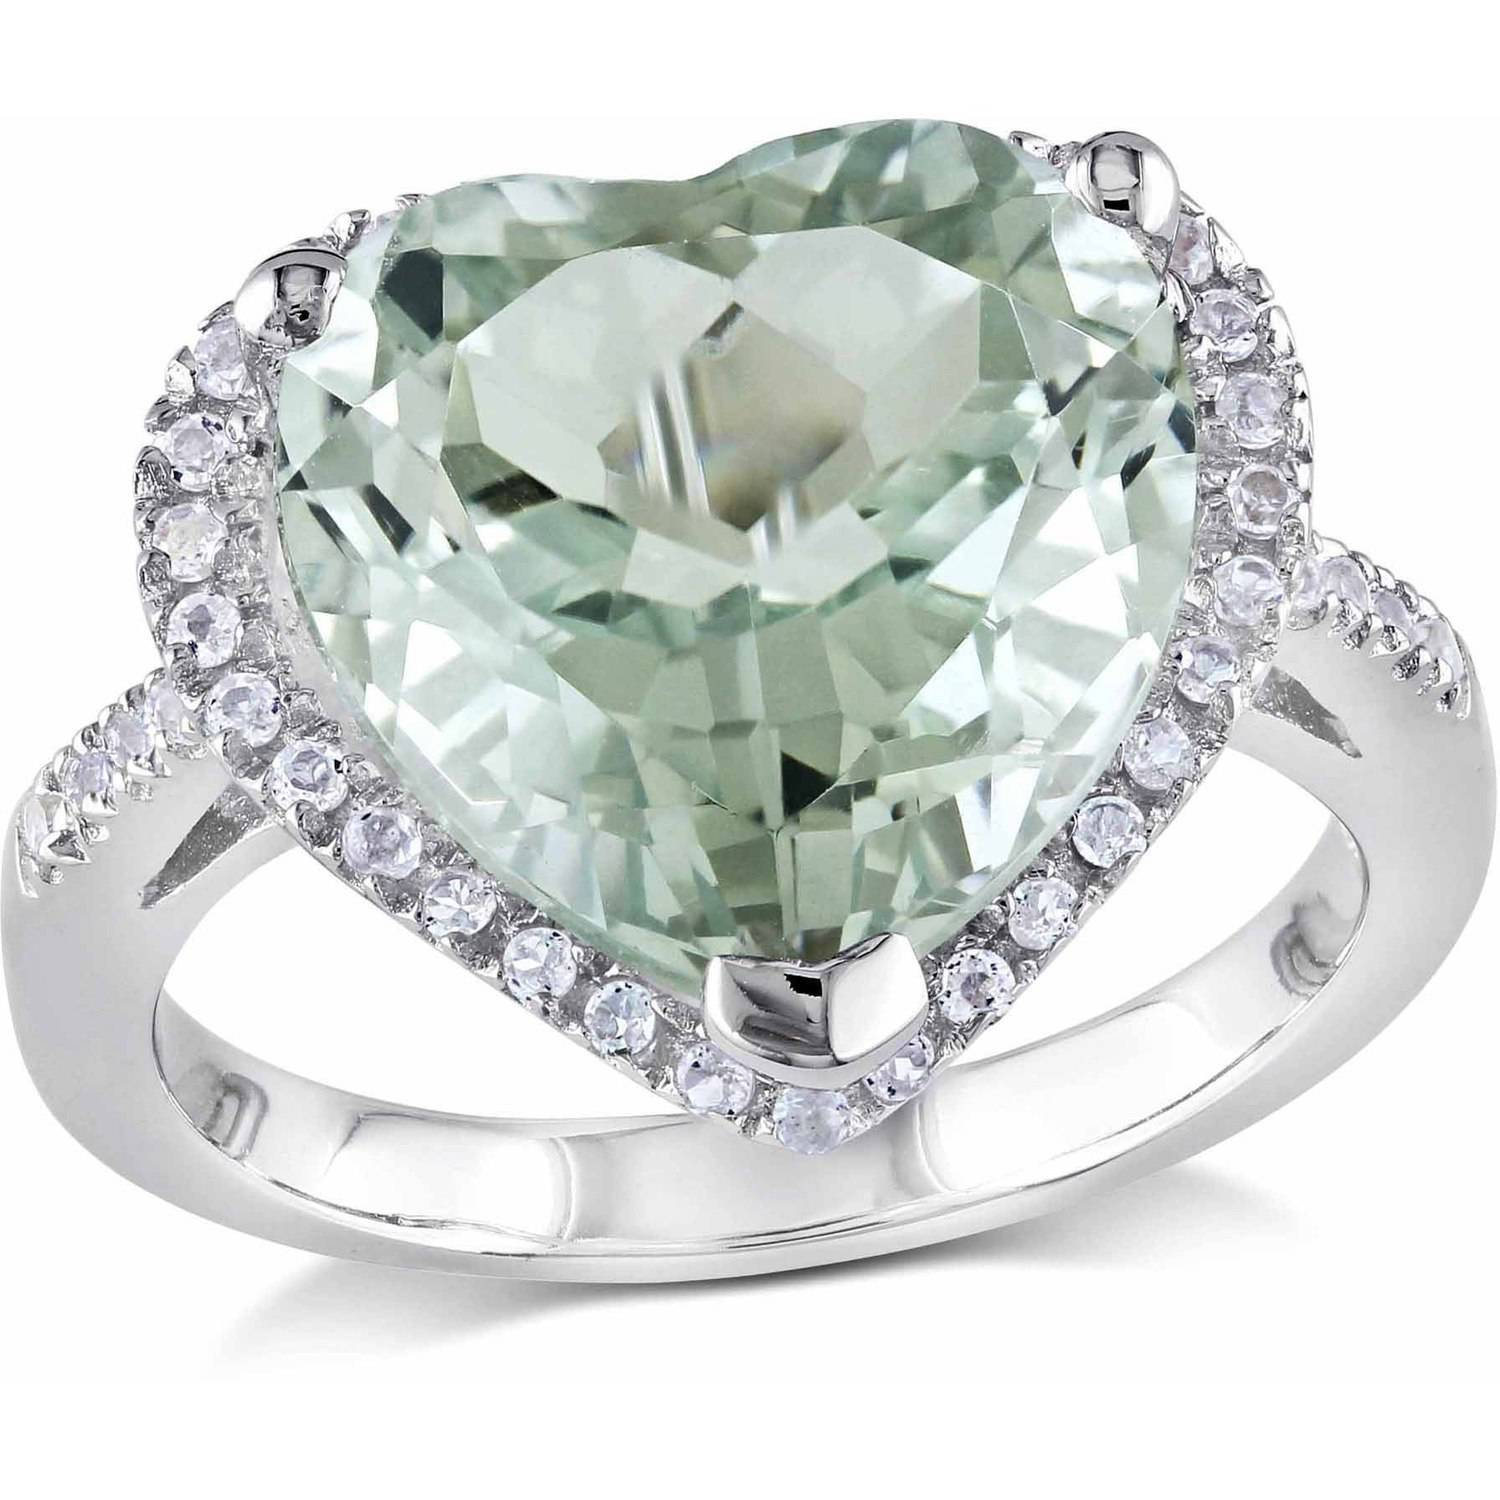 Tangelo 4-4/5 Carat T.G.W. Green Amethyst and White Topaz Sterling Silver Halo Heart Ring